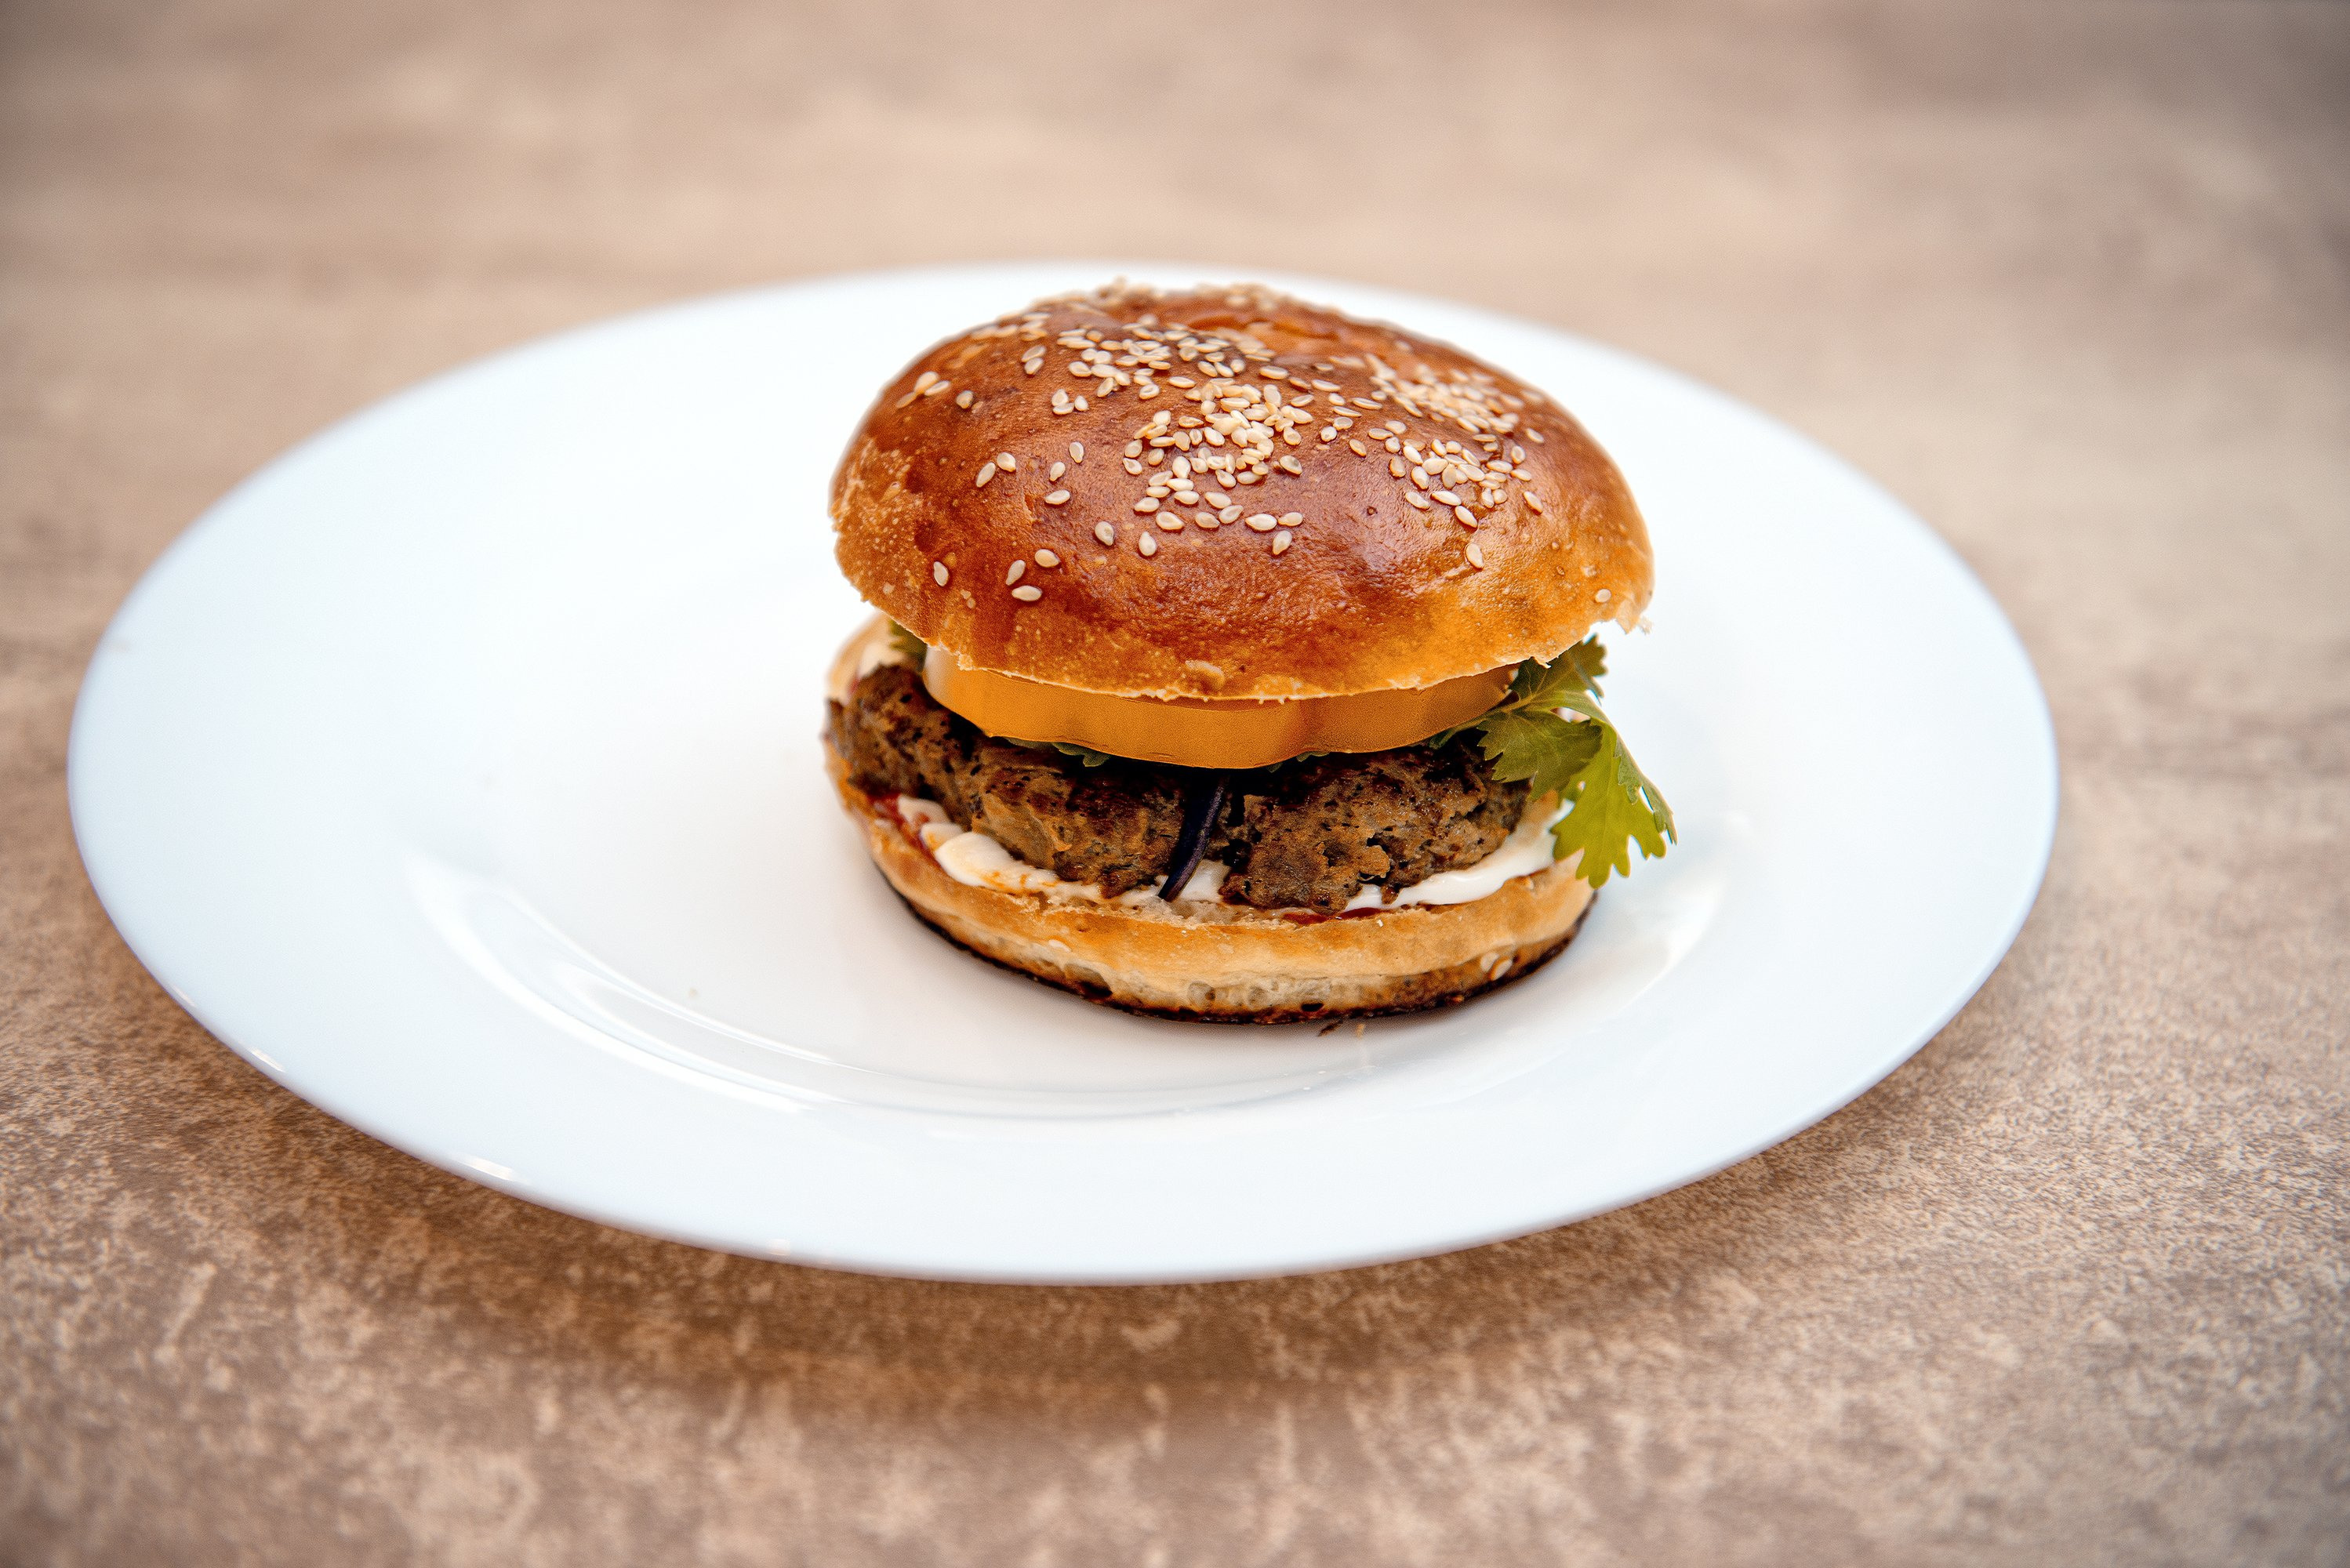 Homemade hamburger with fresh vegetables on white plate example image 1